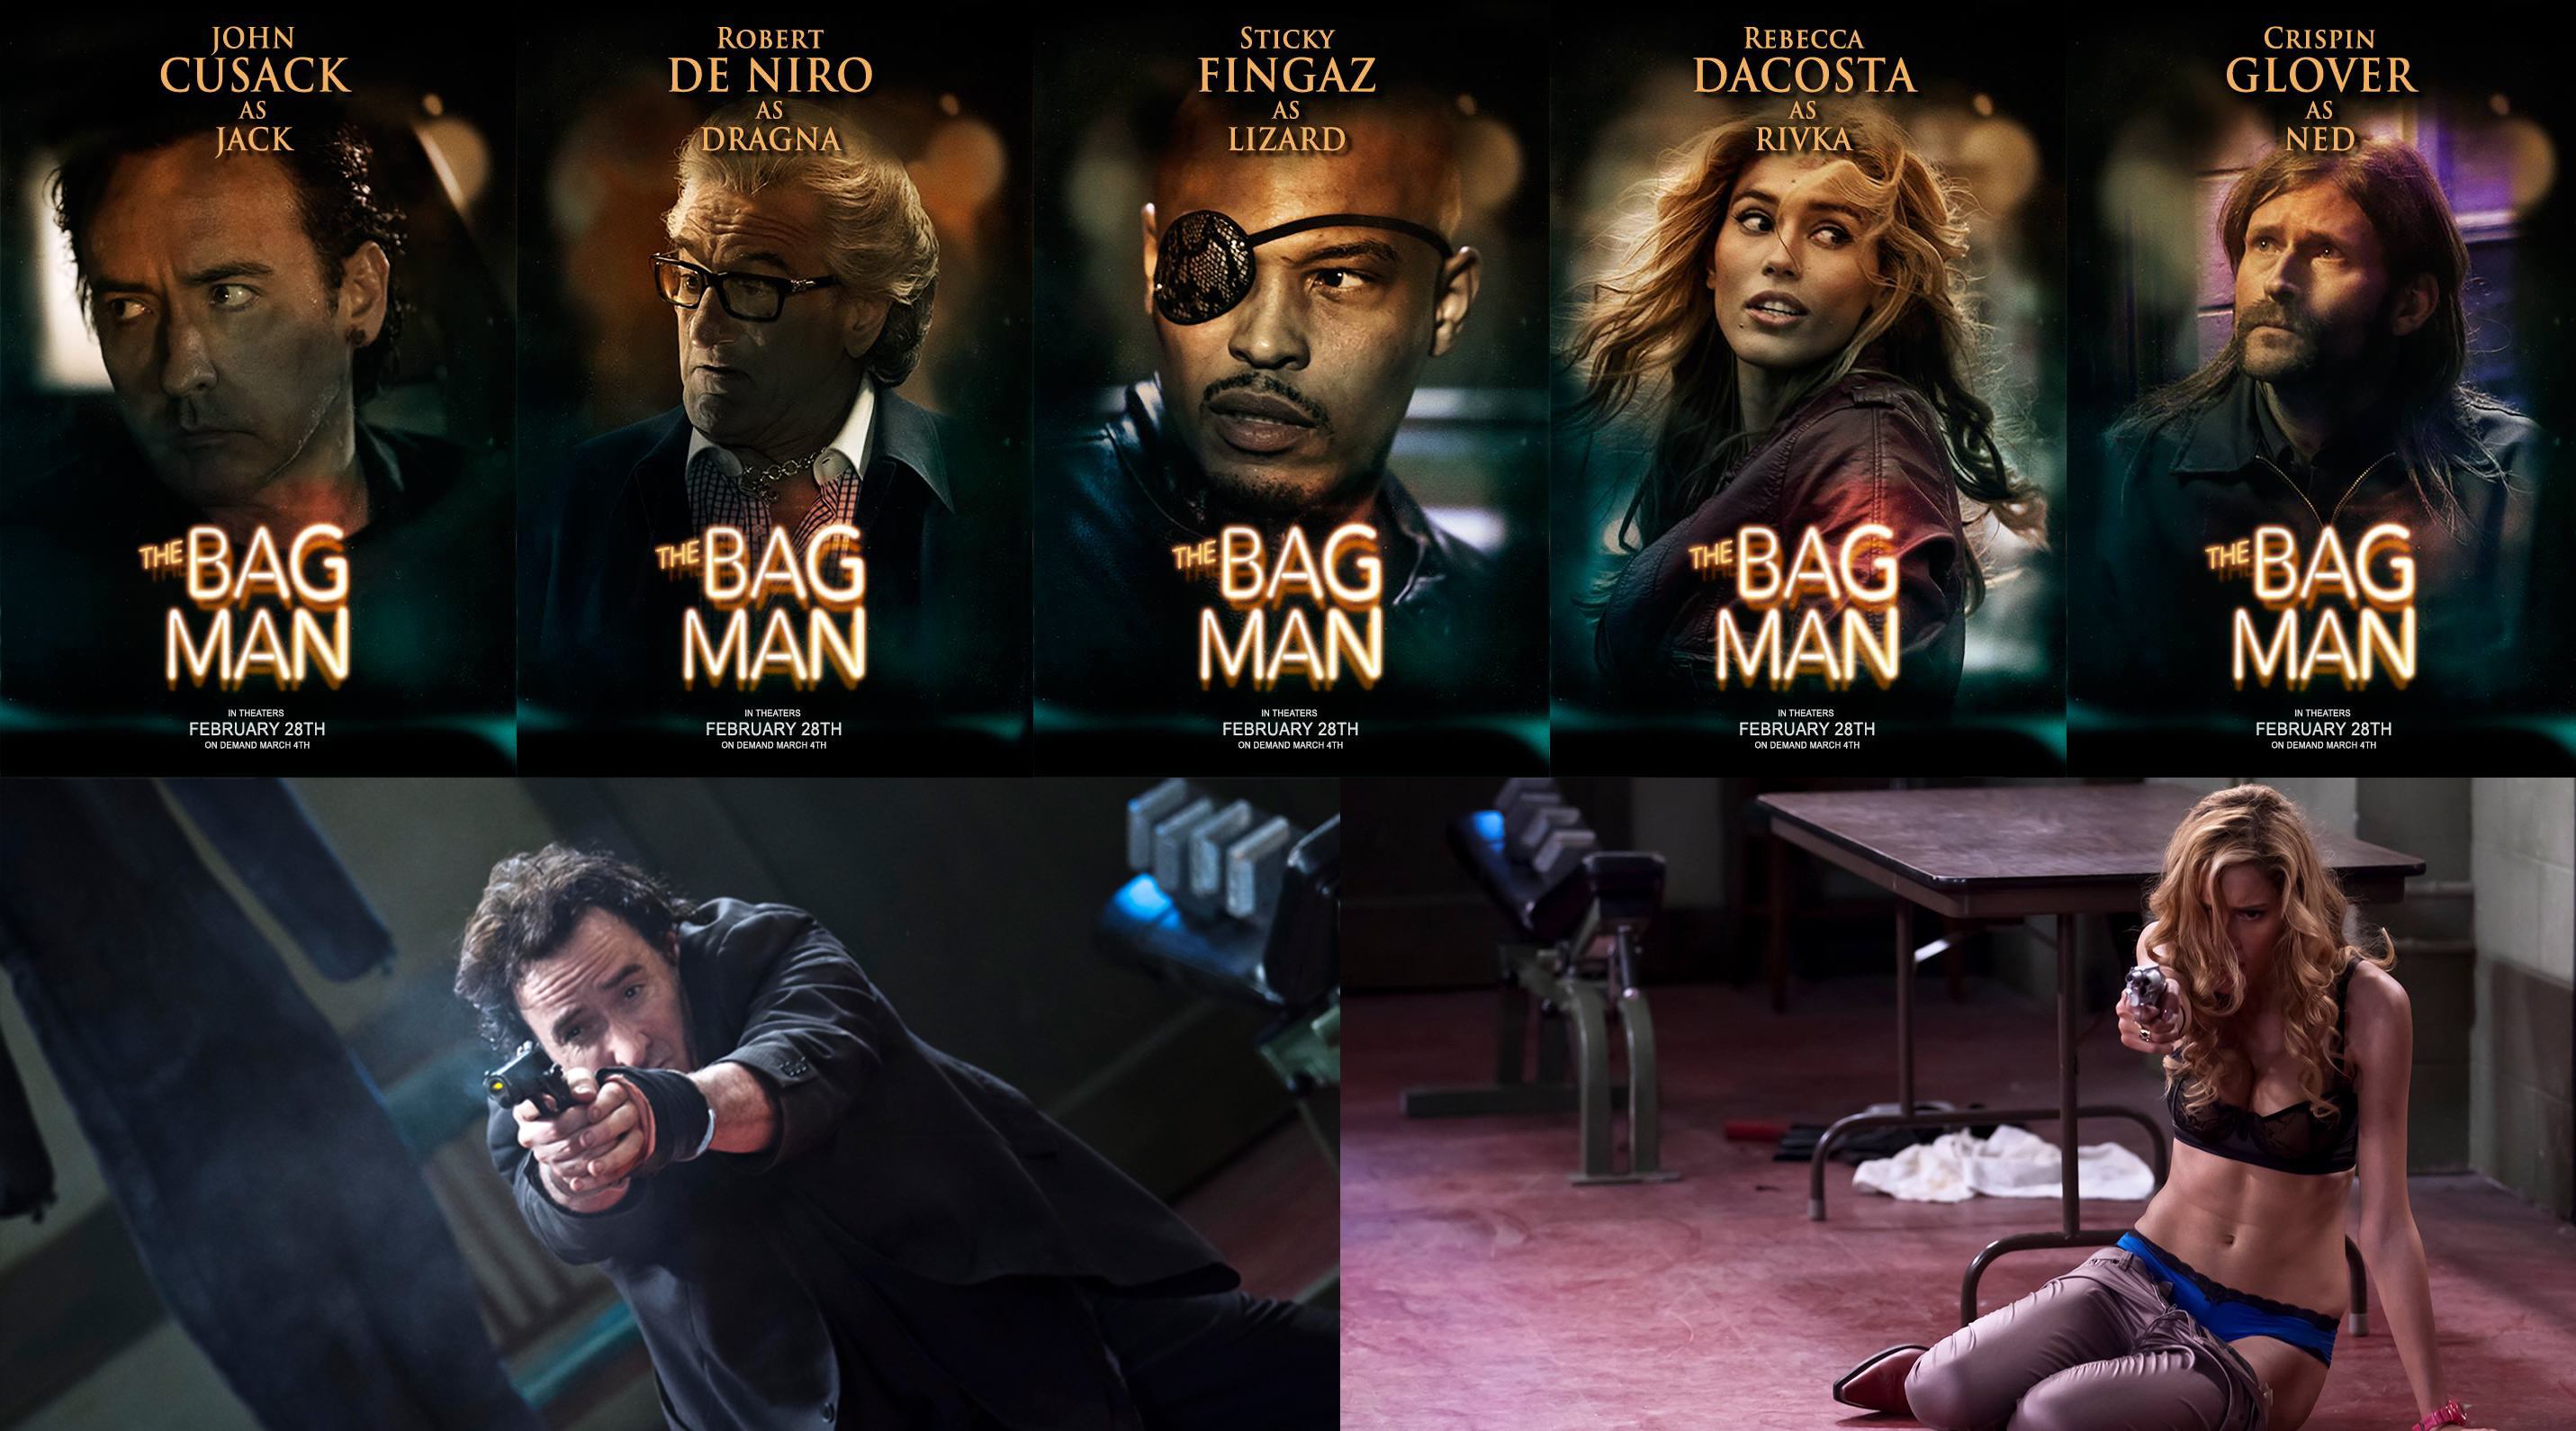 Share this The Bag Man Movie Poster